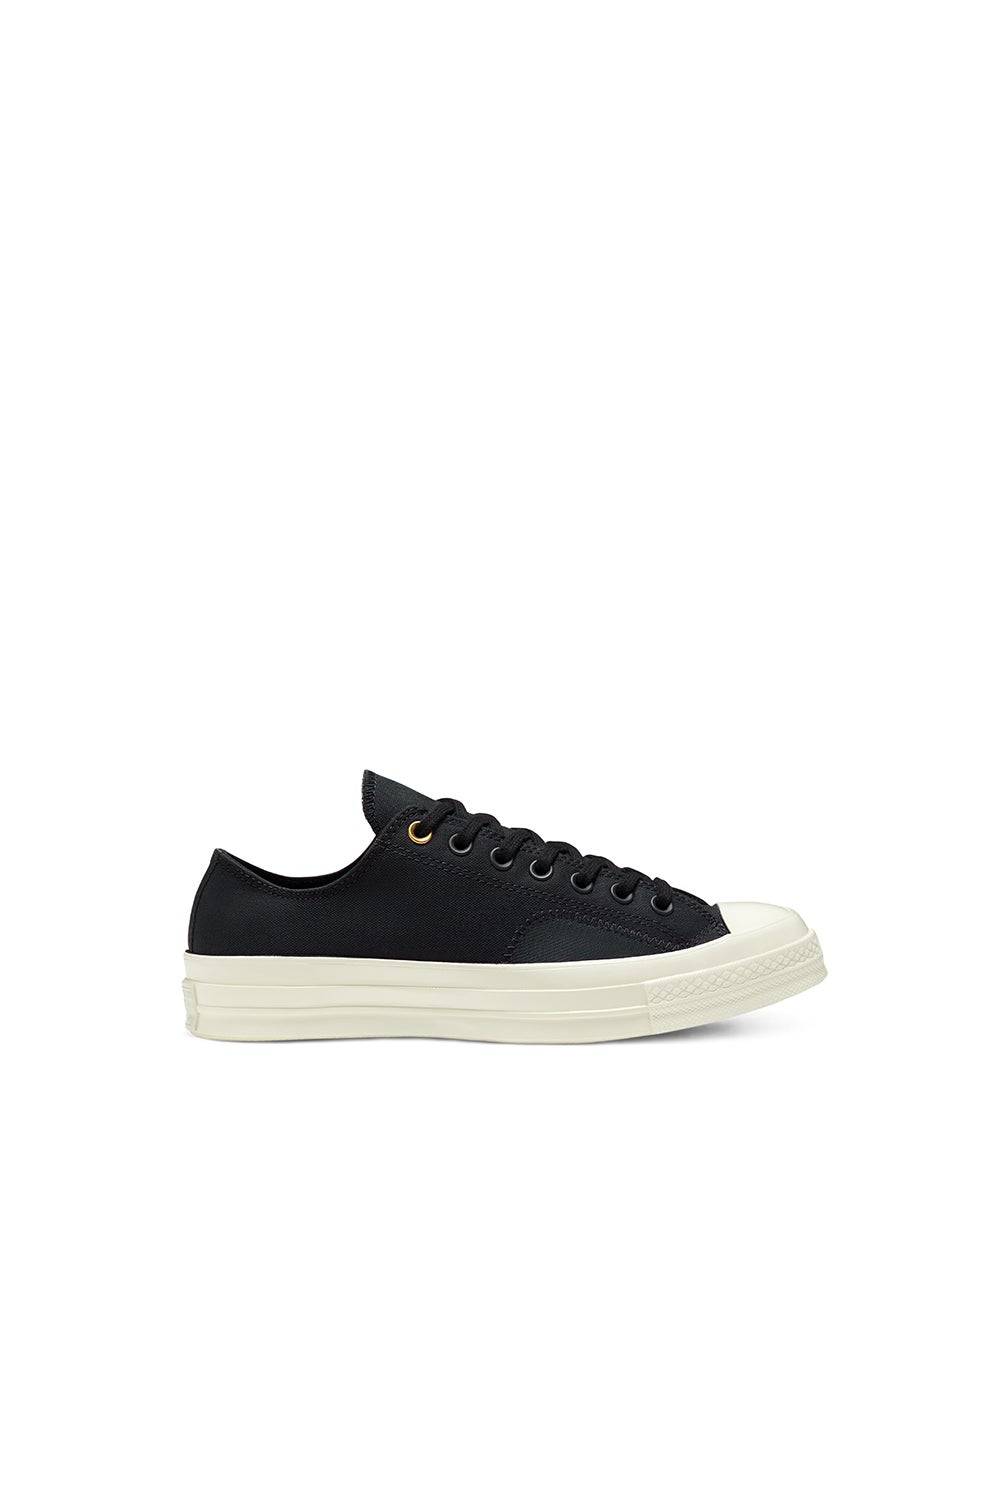 Converse Chuck Taylor All Star 70 Clean N Preme Low Black